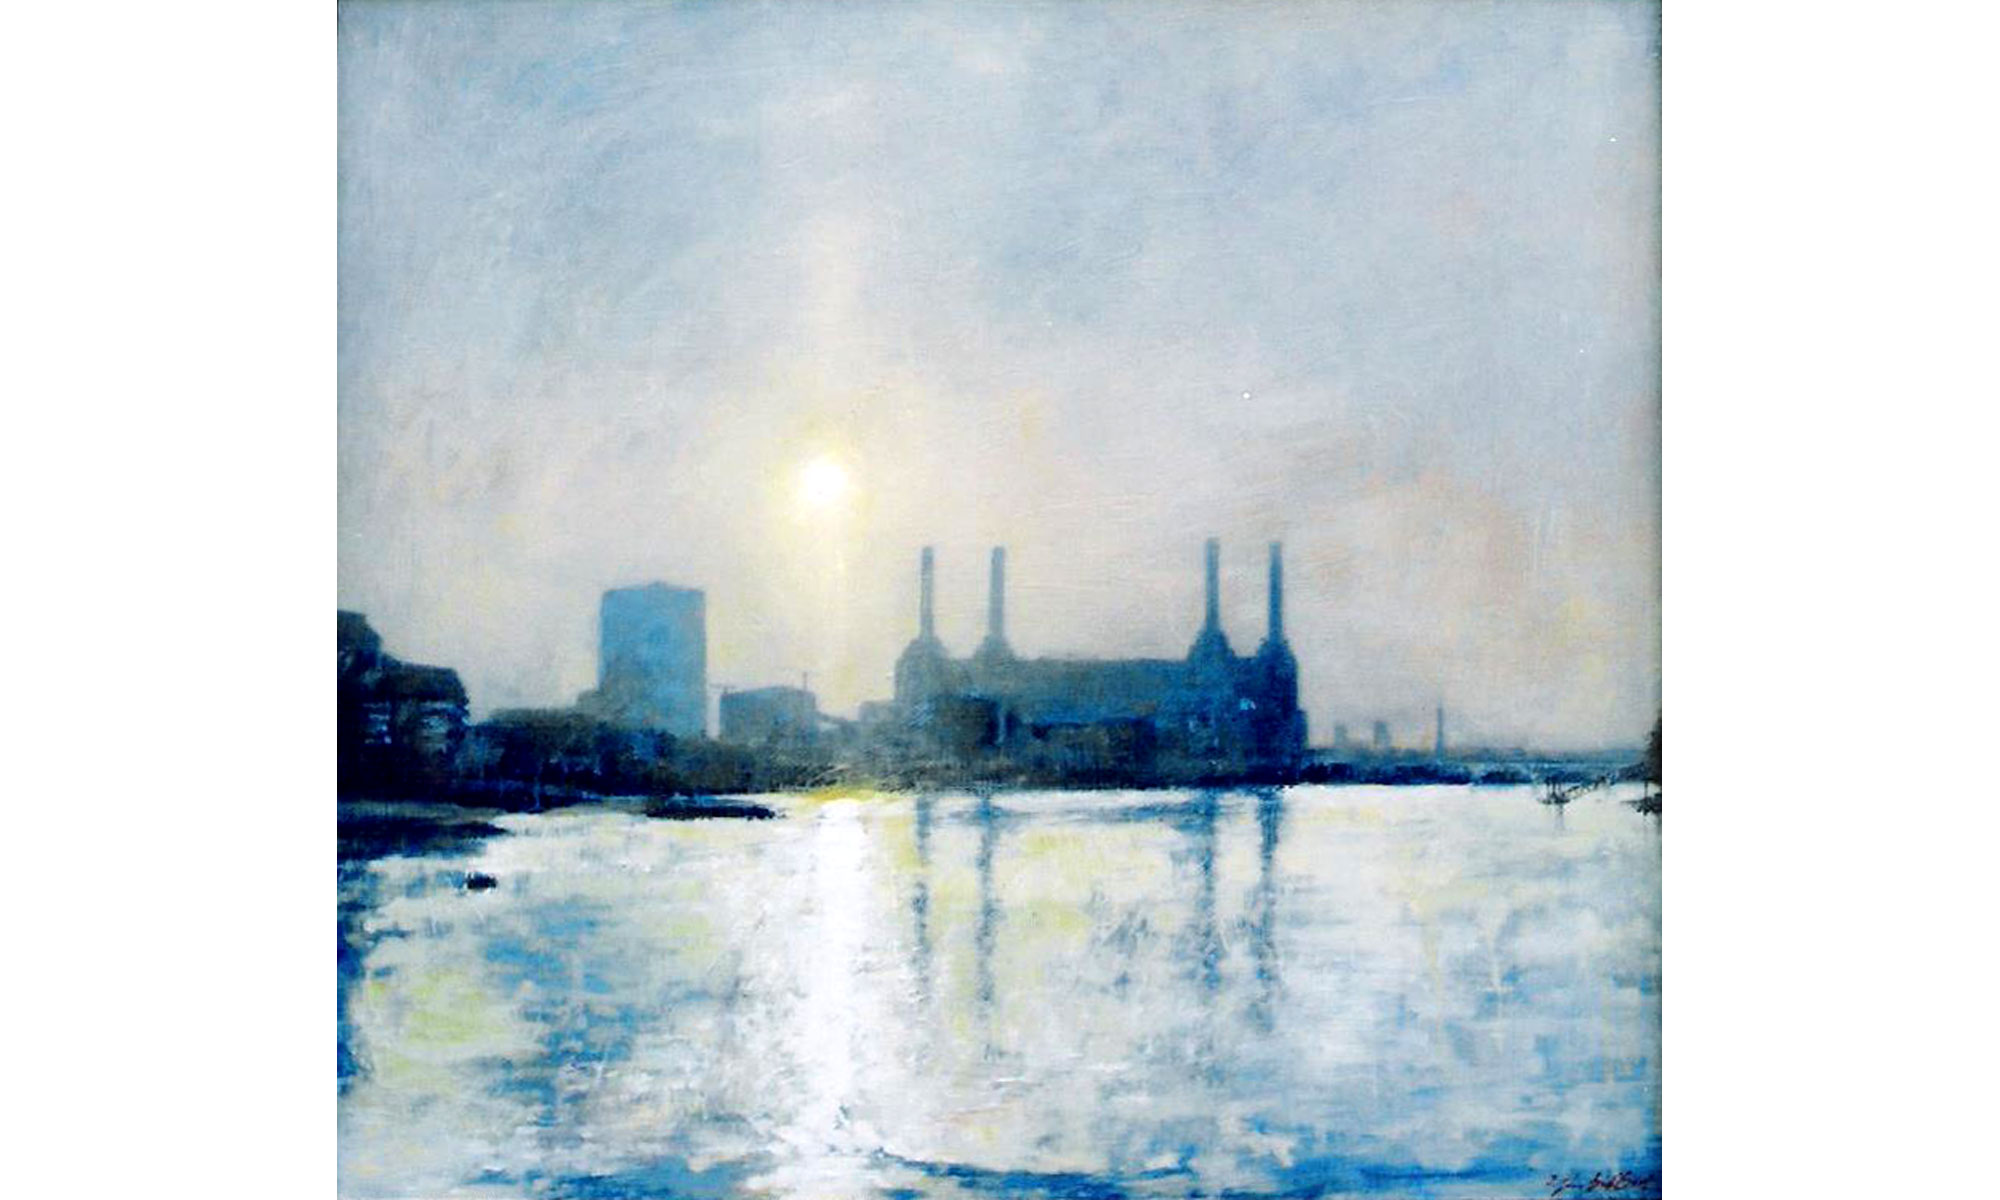 Battersea Afternoon Painting by Terence J Gilbert Oil on Board